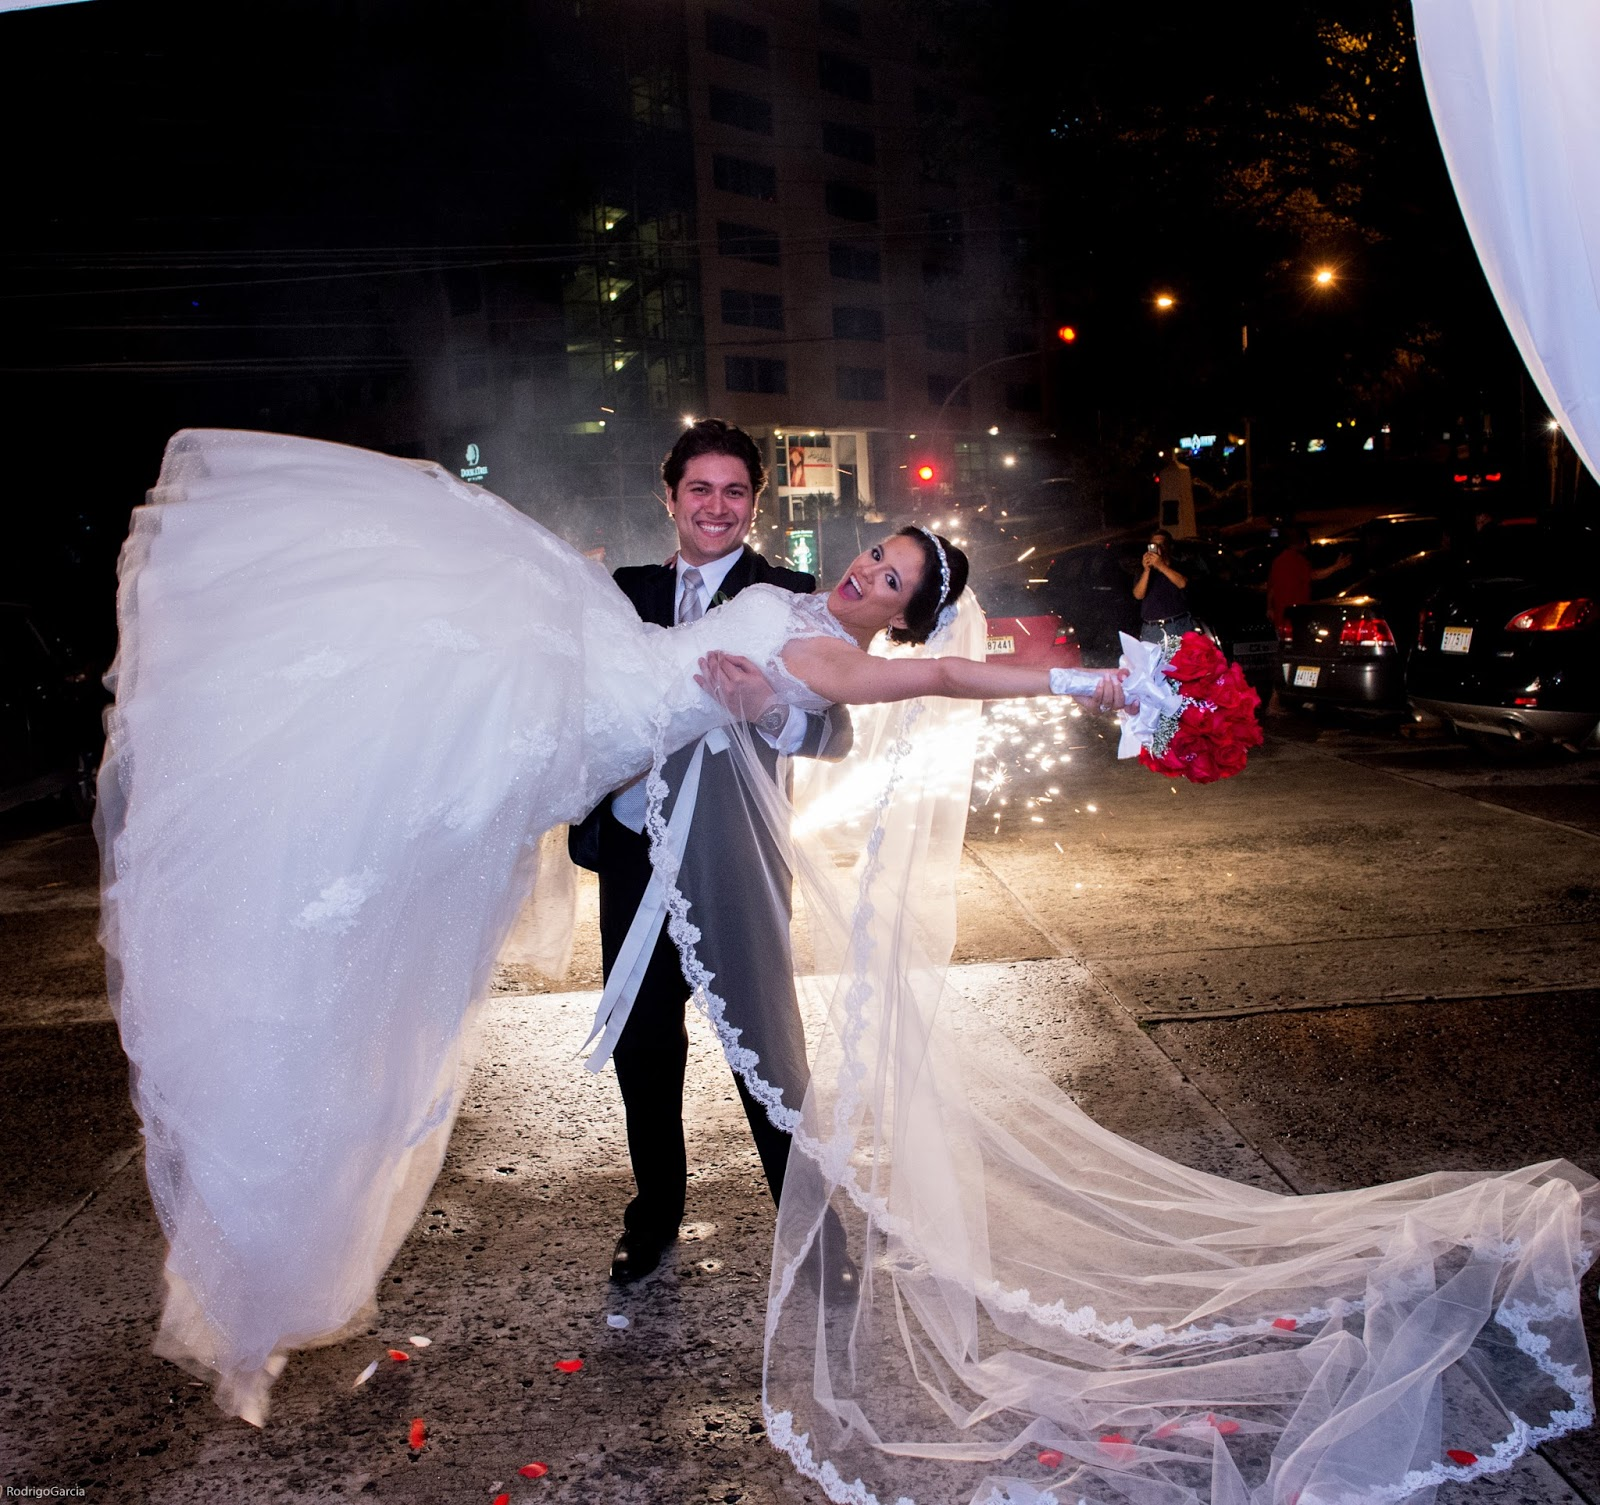 Lovely Wedding Photo idea with Fireworks